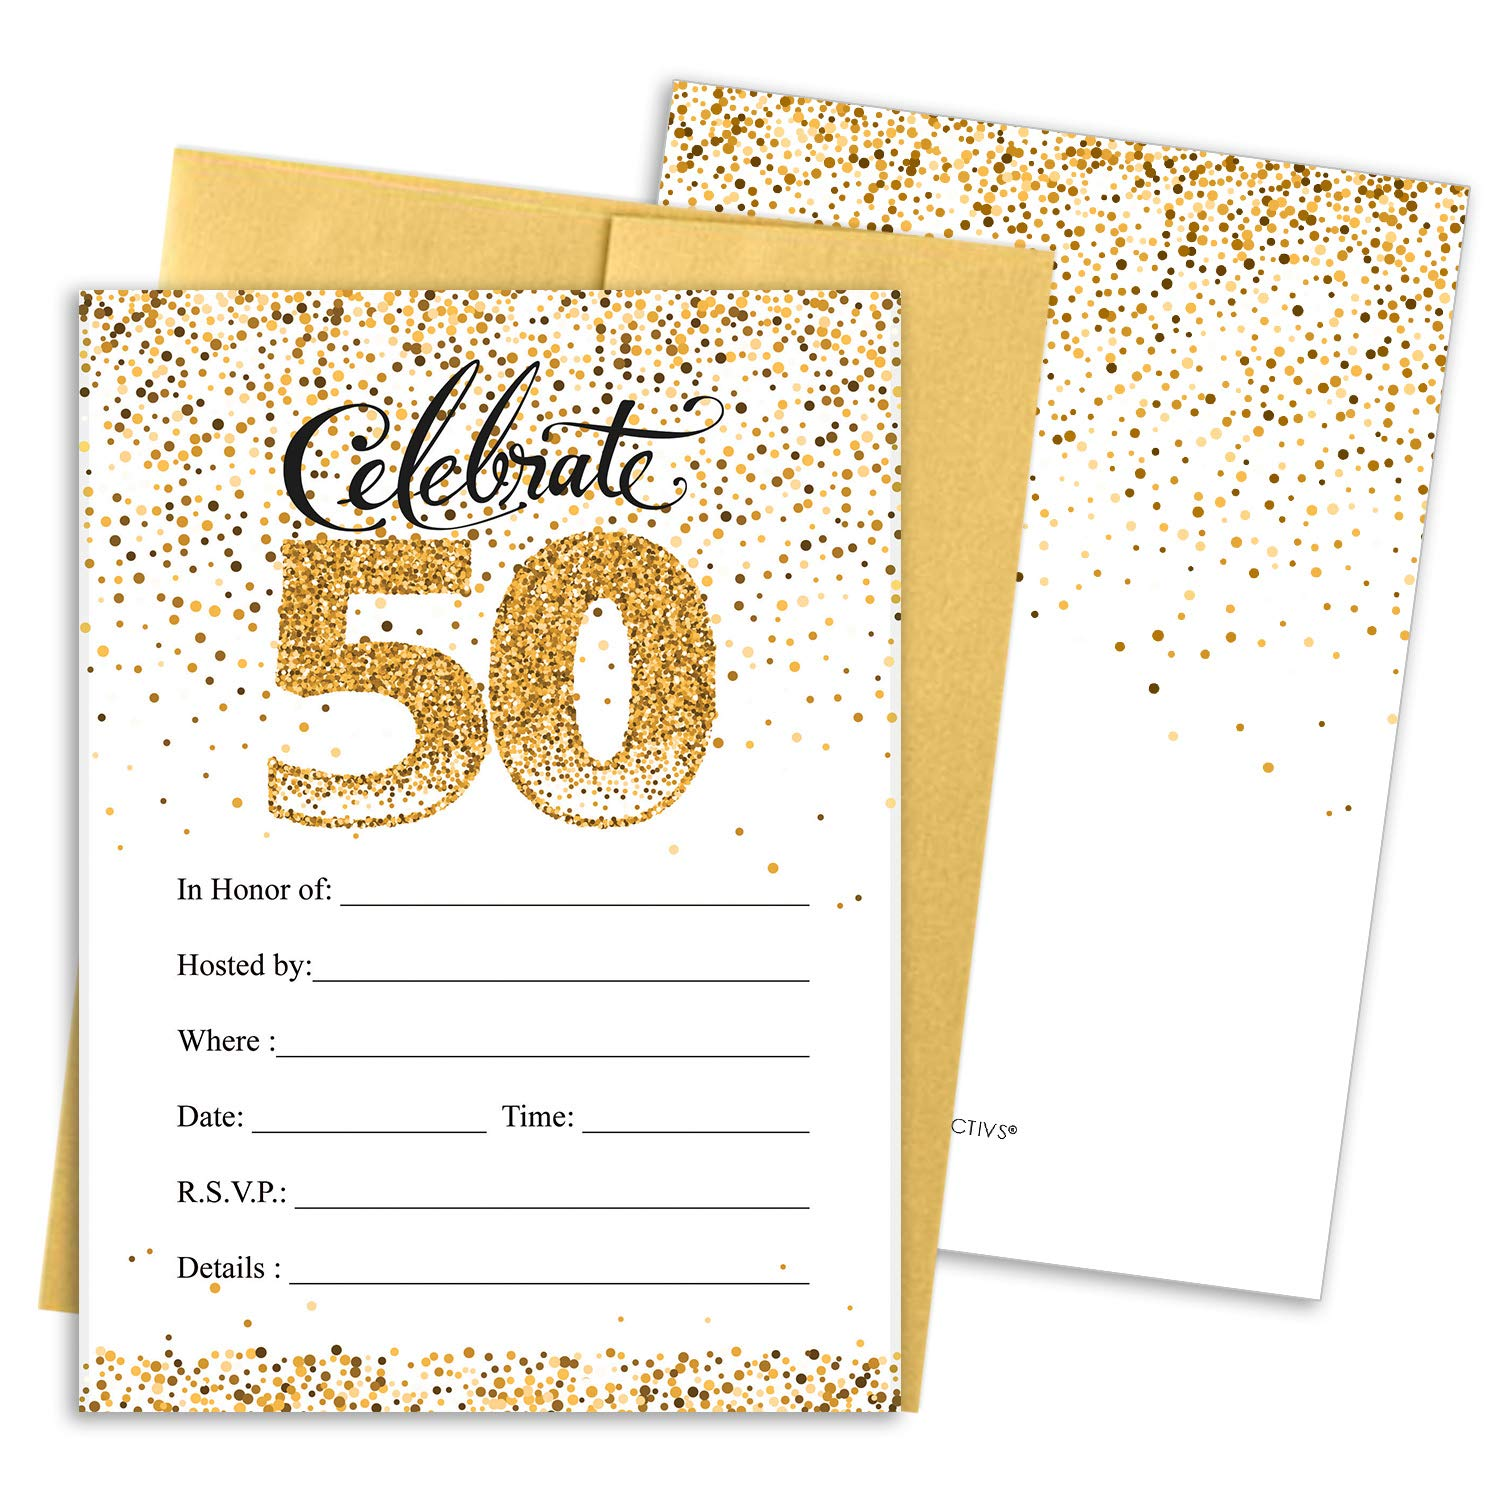 50th Birthday Party Invitation Cards With Envelopes 25 Count White And Gold